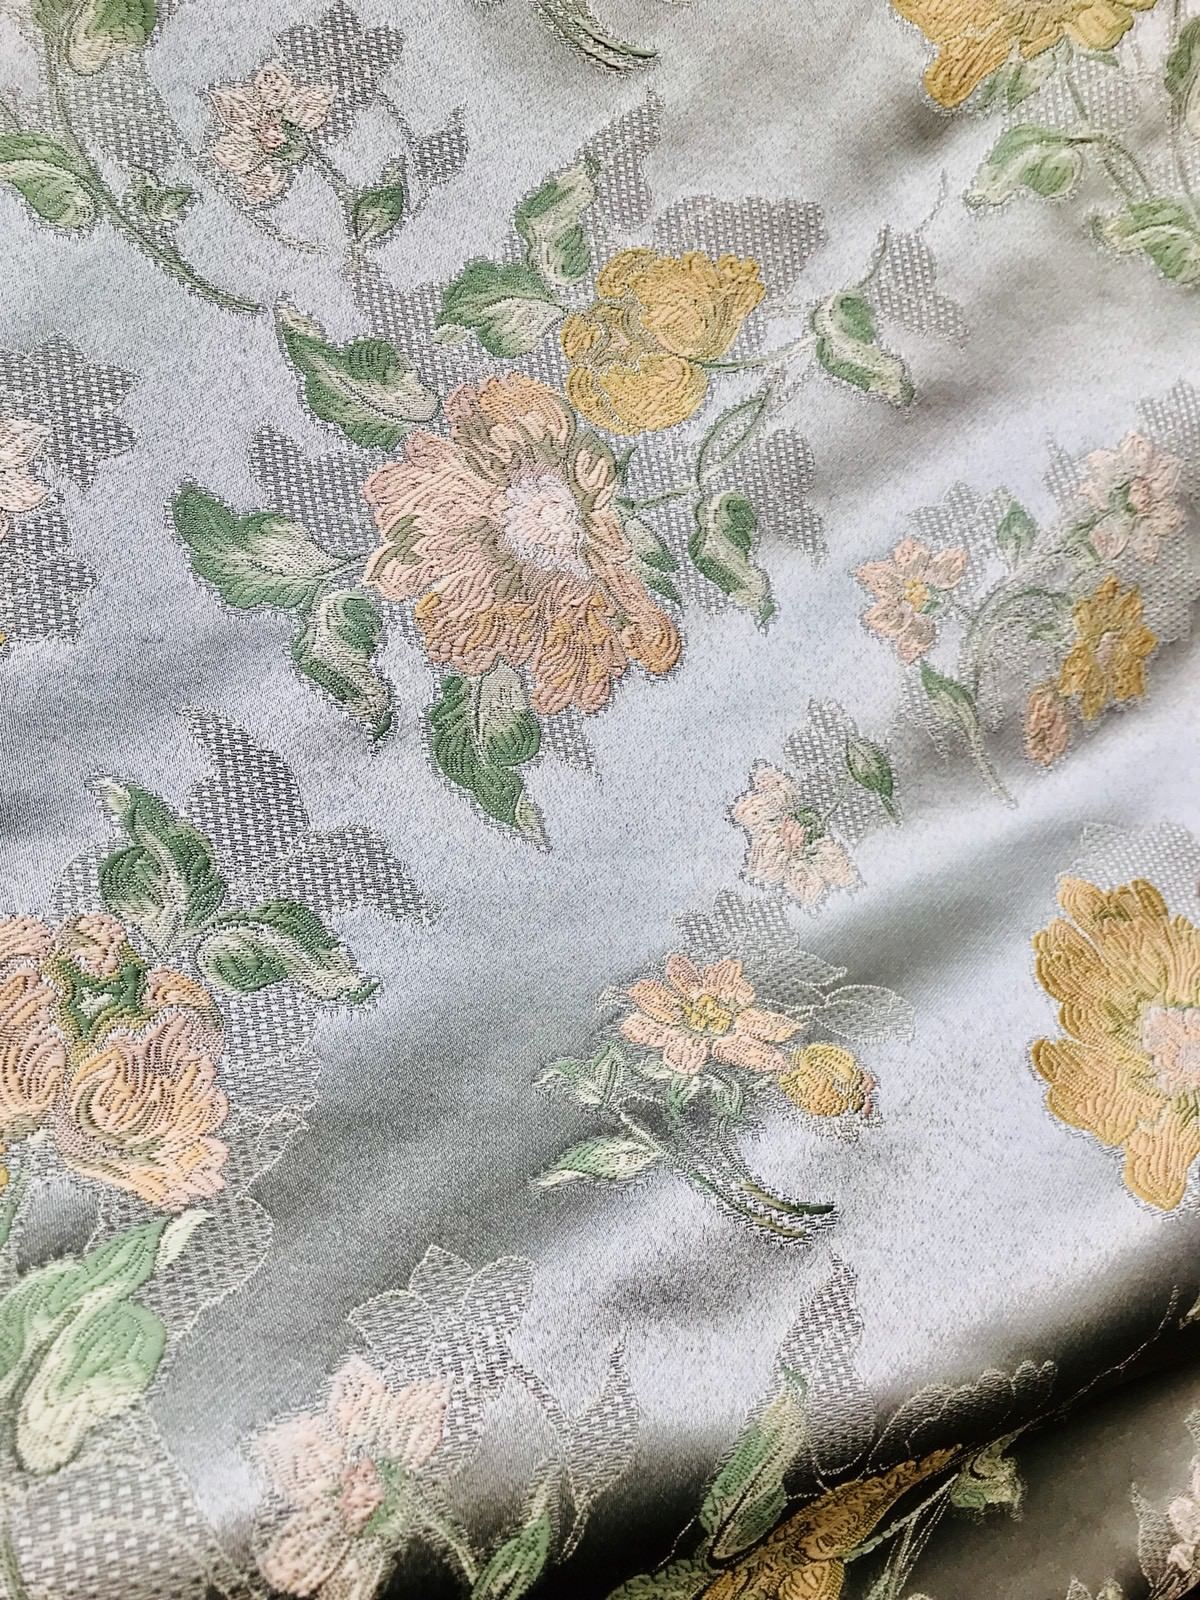 SWATCH Designer Brocade Satin Fabric- Mint Green Pink Yellow Floral - Damask - Fancy Styles Fabric Boutique